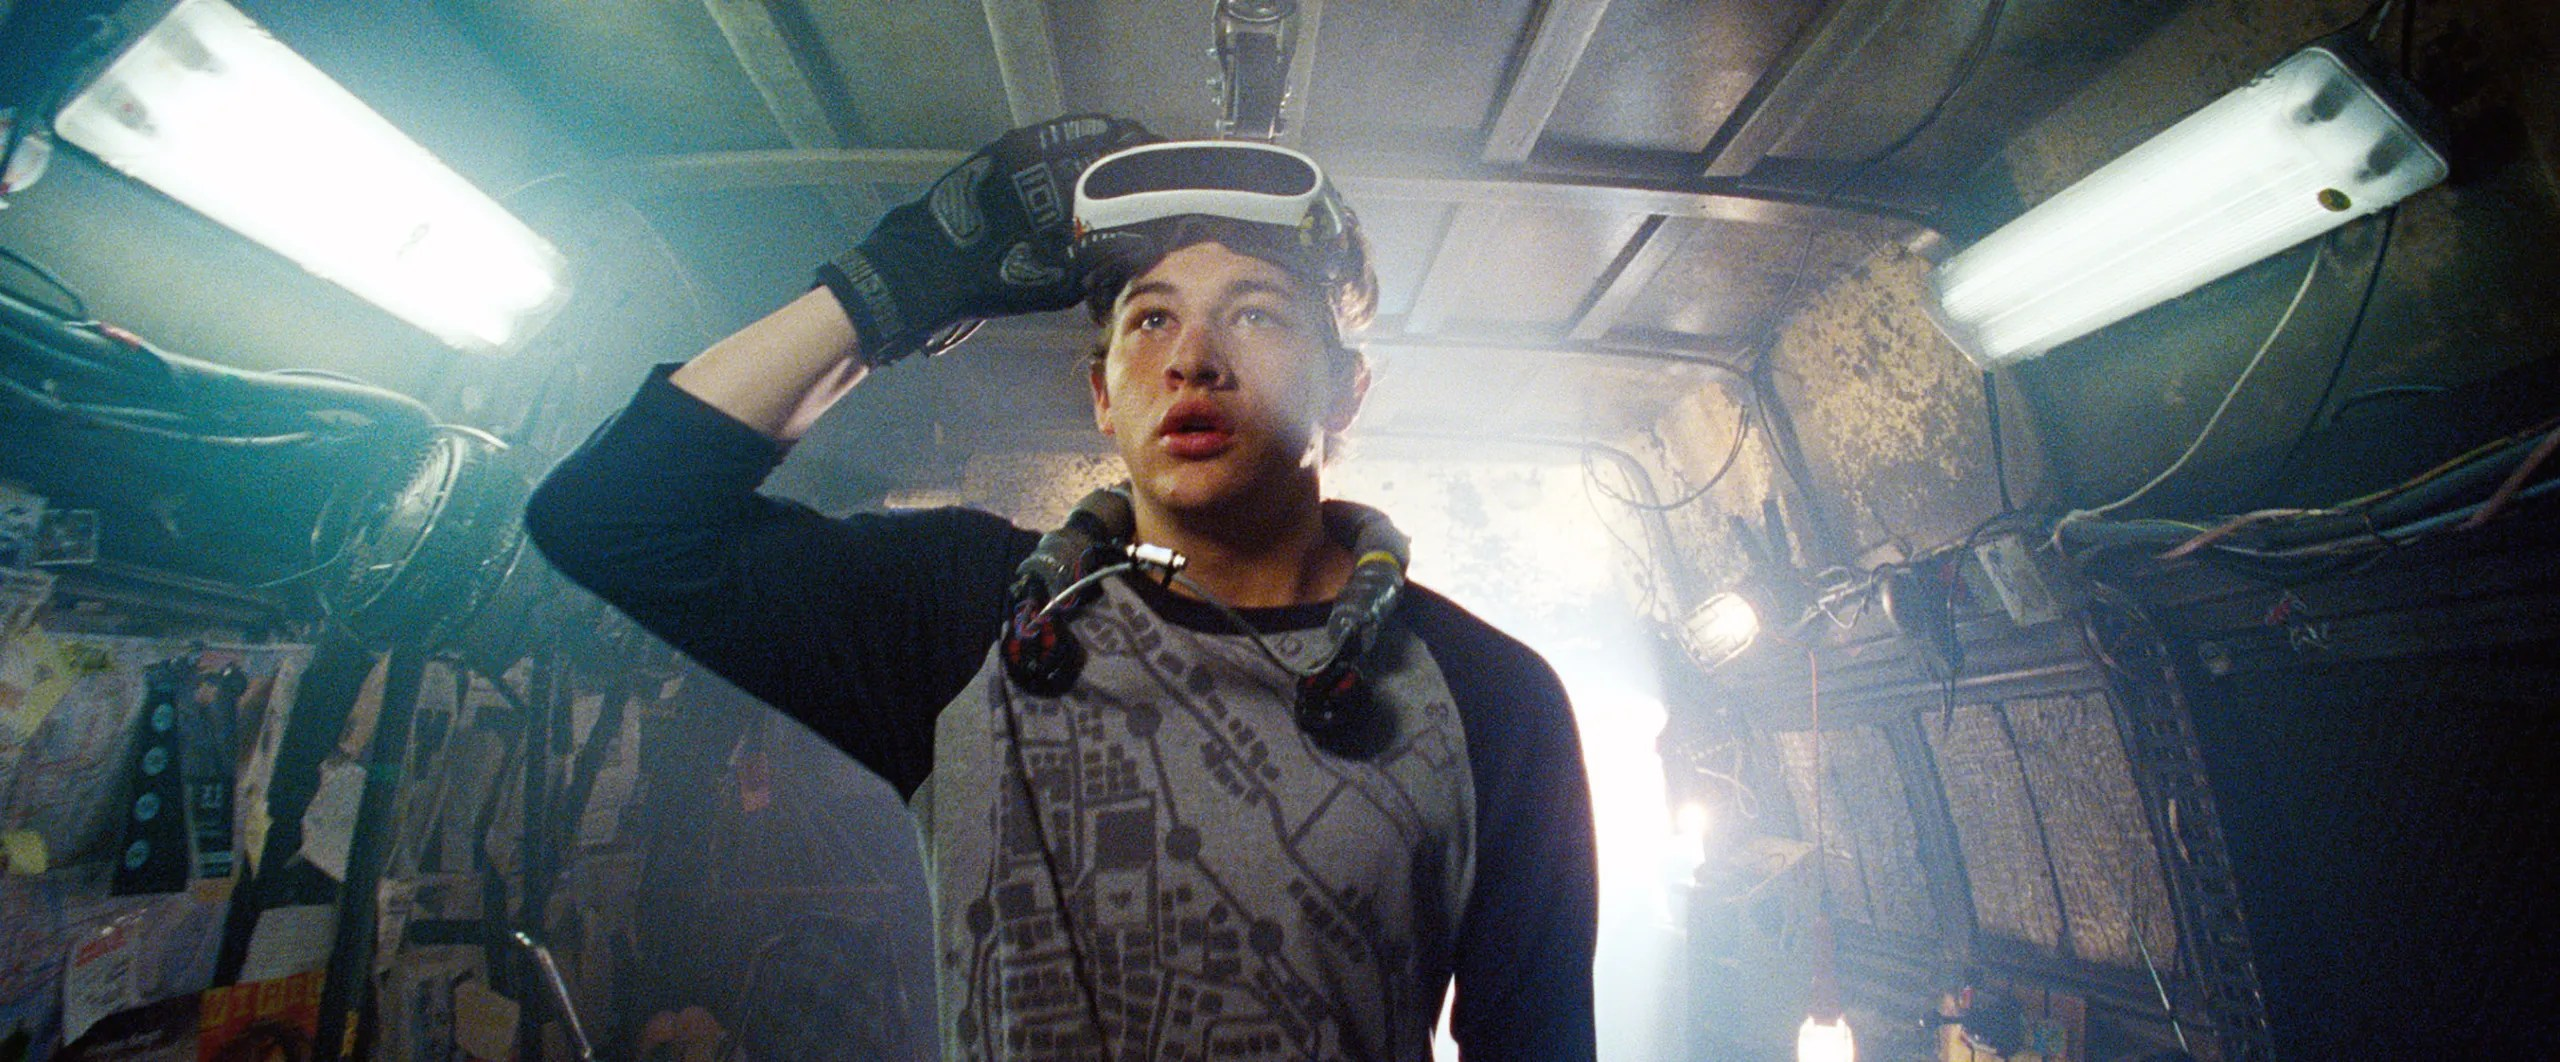 """Steven Spielberg's Oblivious. Chilling Pop-Culture Nostalgia in """"Ready Player One"""" 